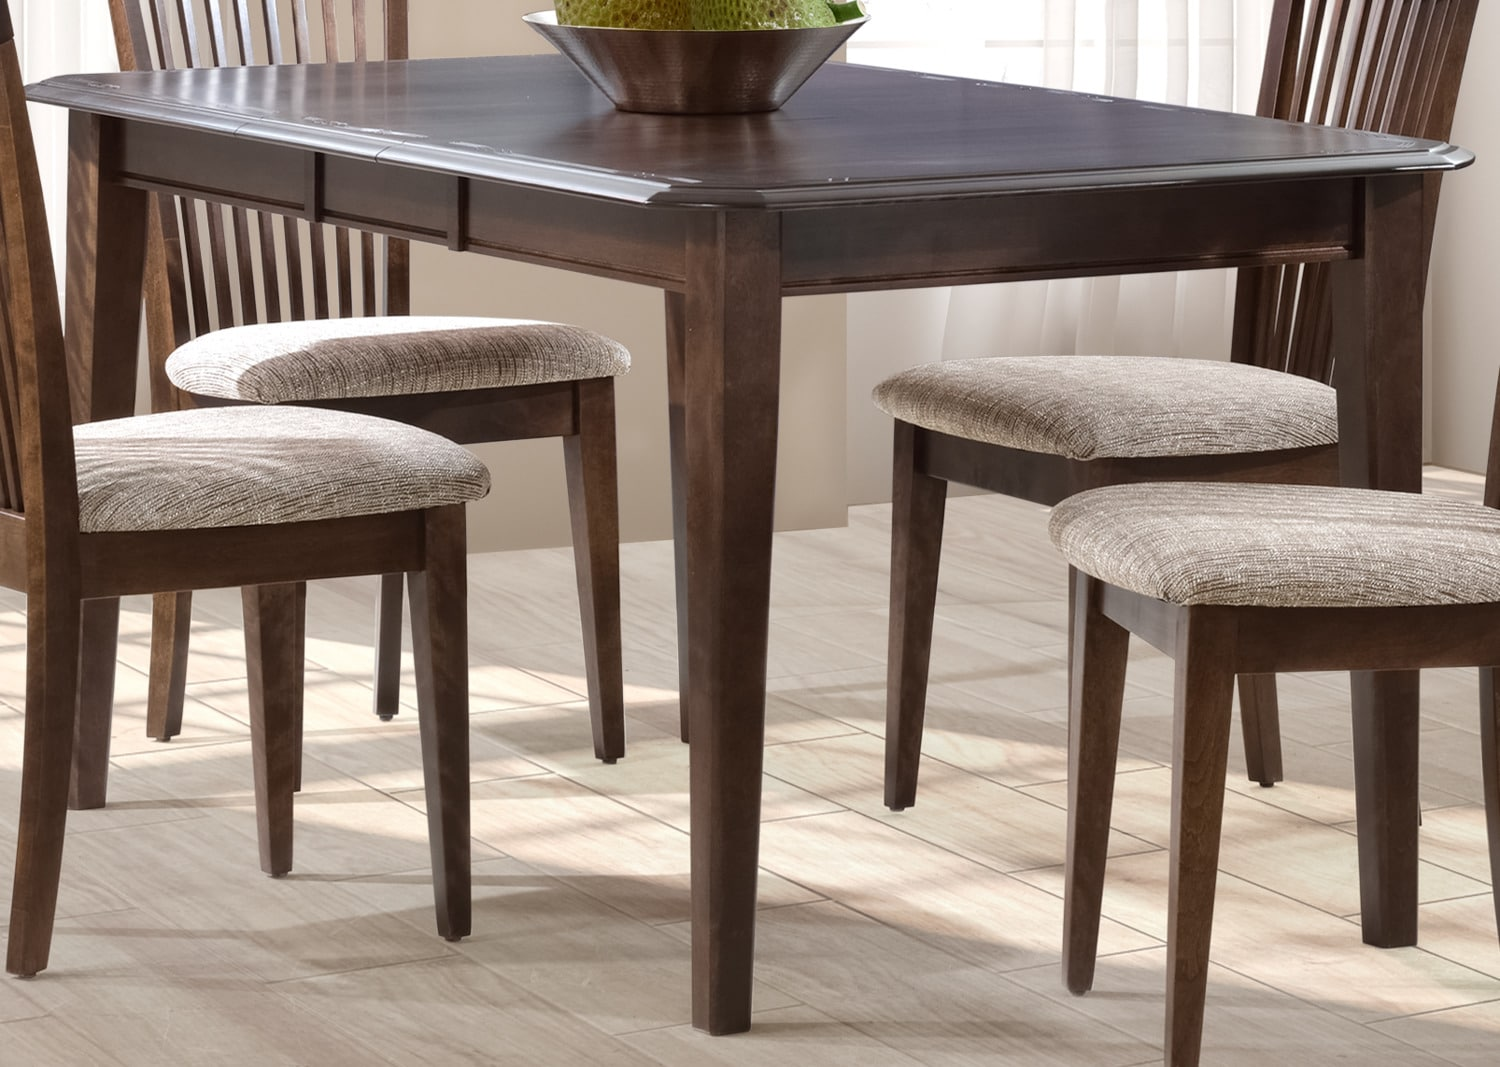 Granby Dining Table - Bark Brown